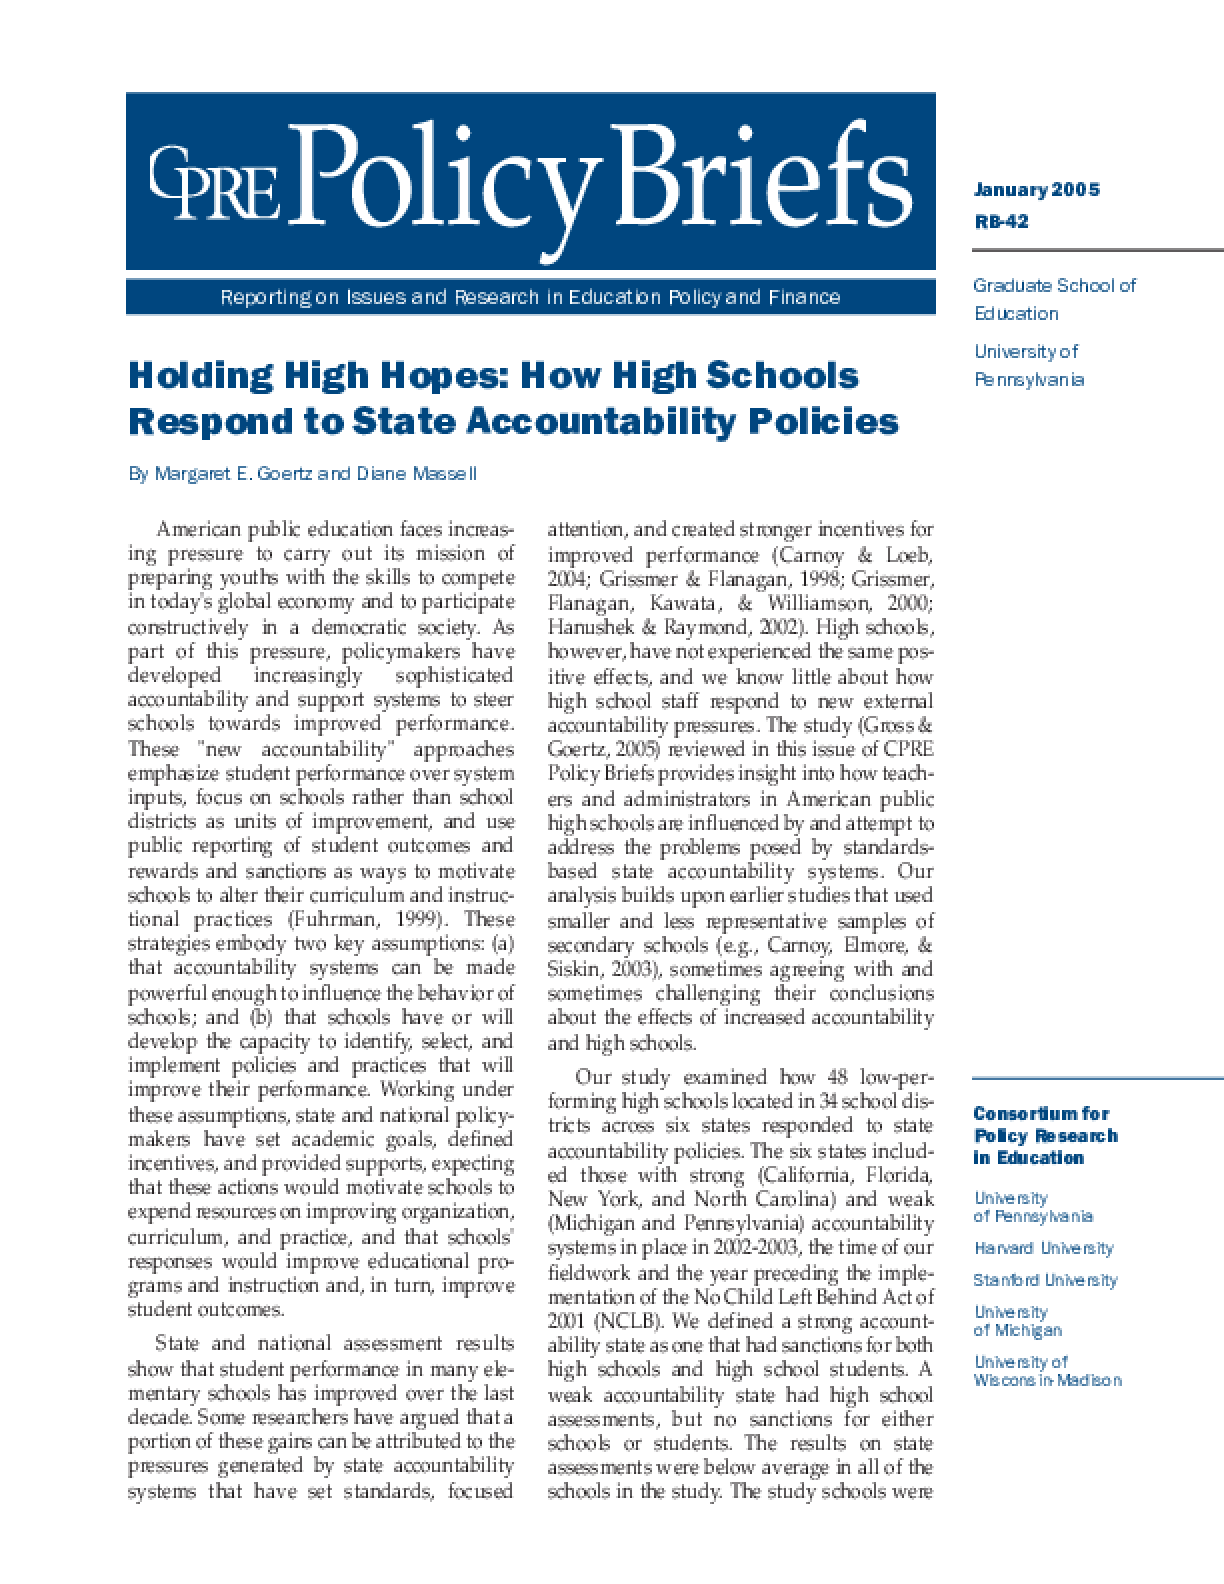 Holding High Hopes: How High Schools Respond to State Accountability Policies